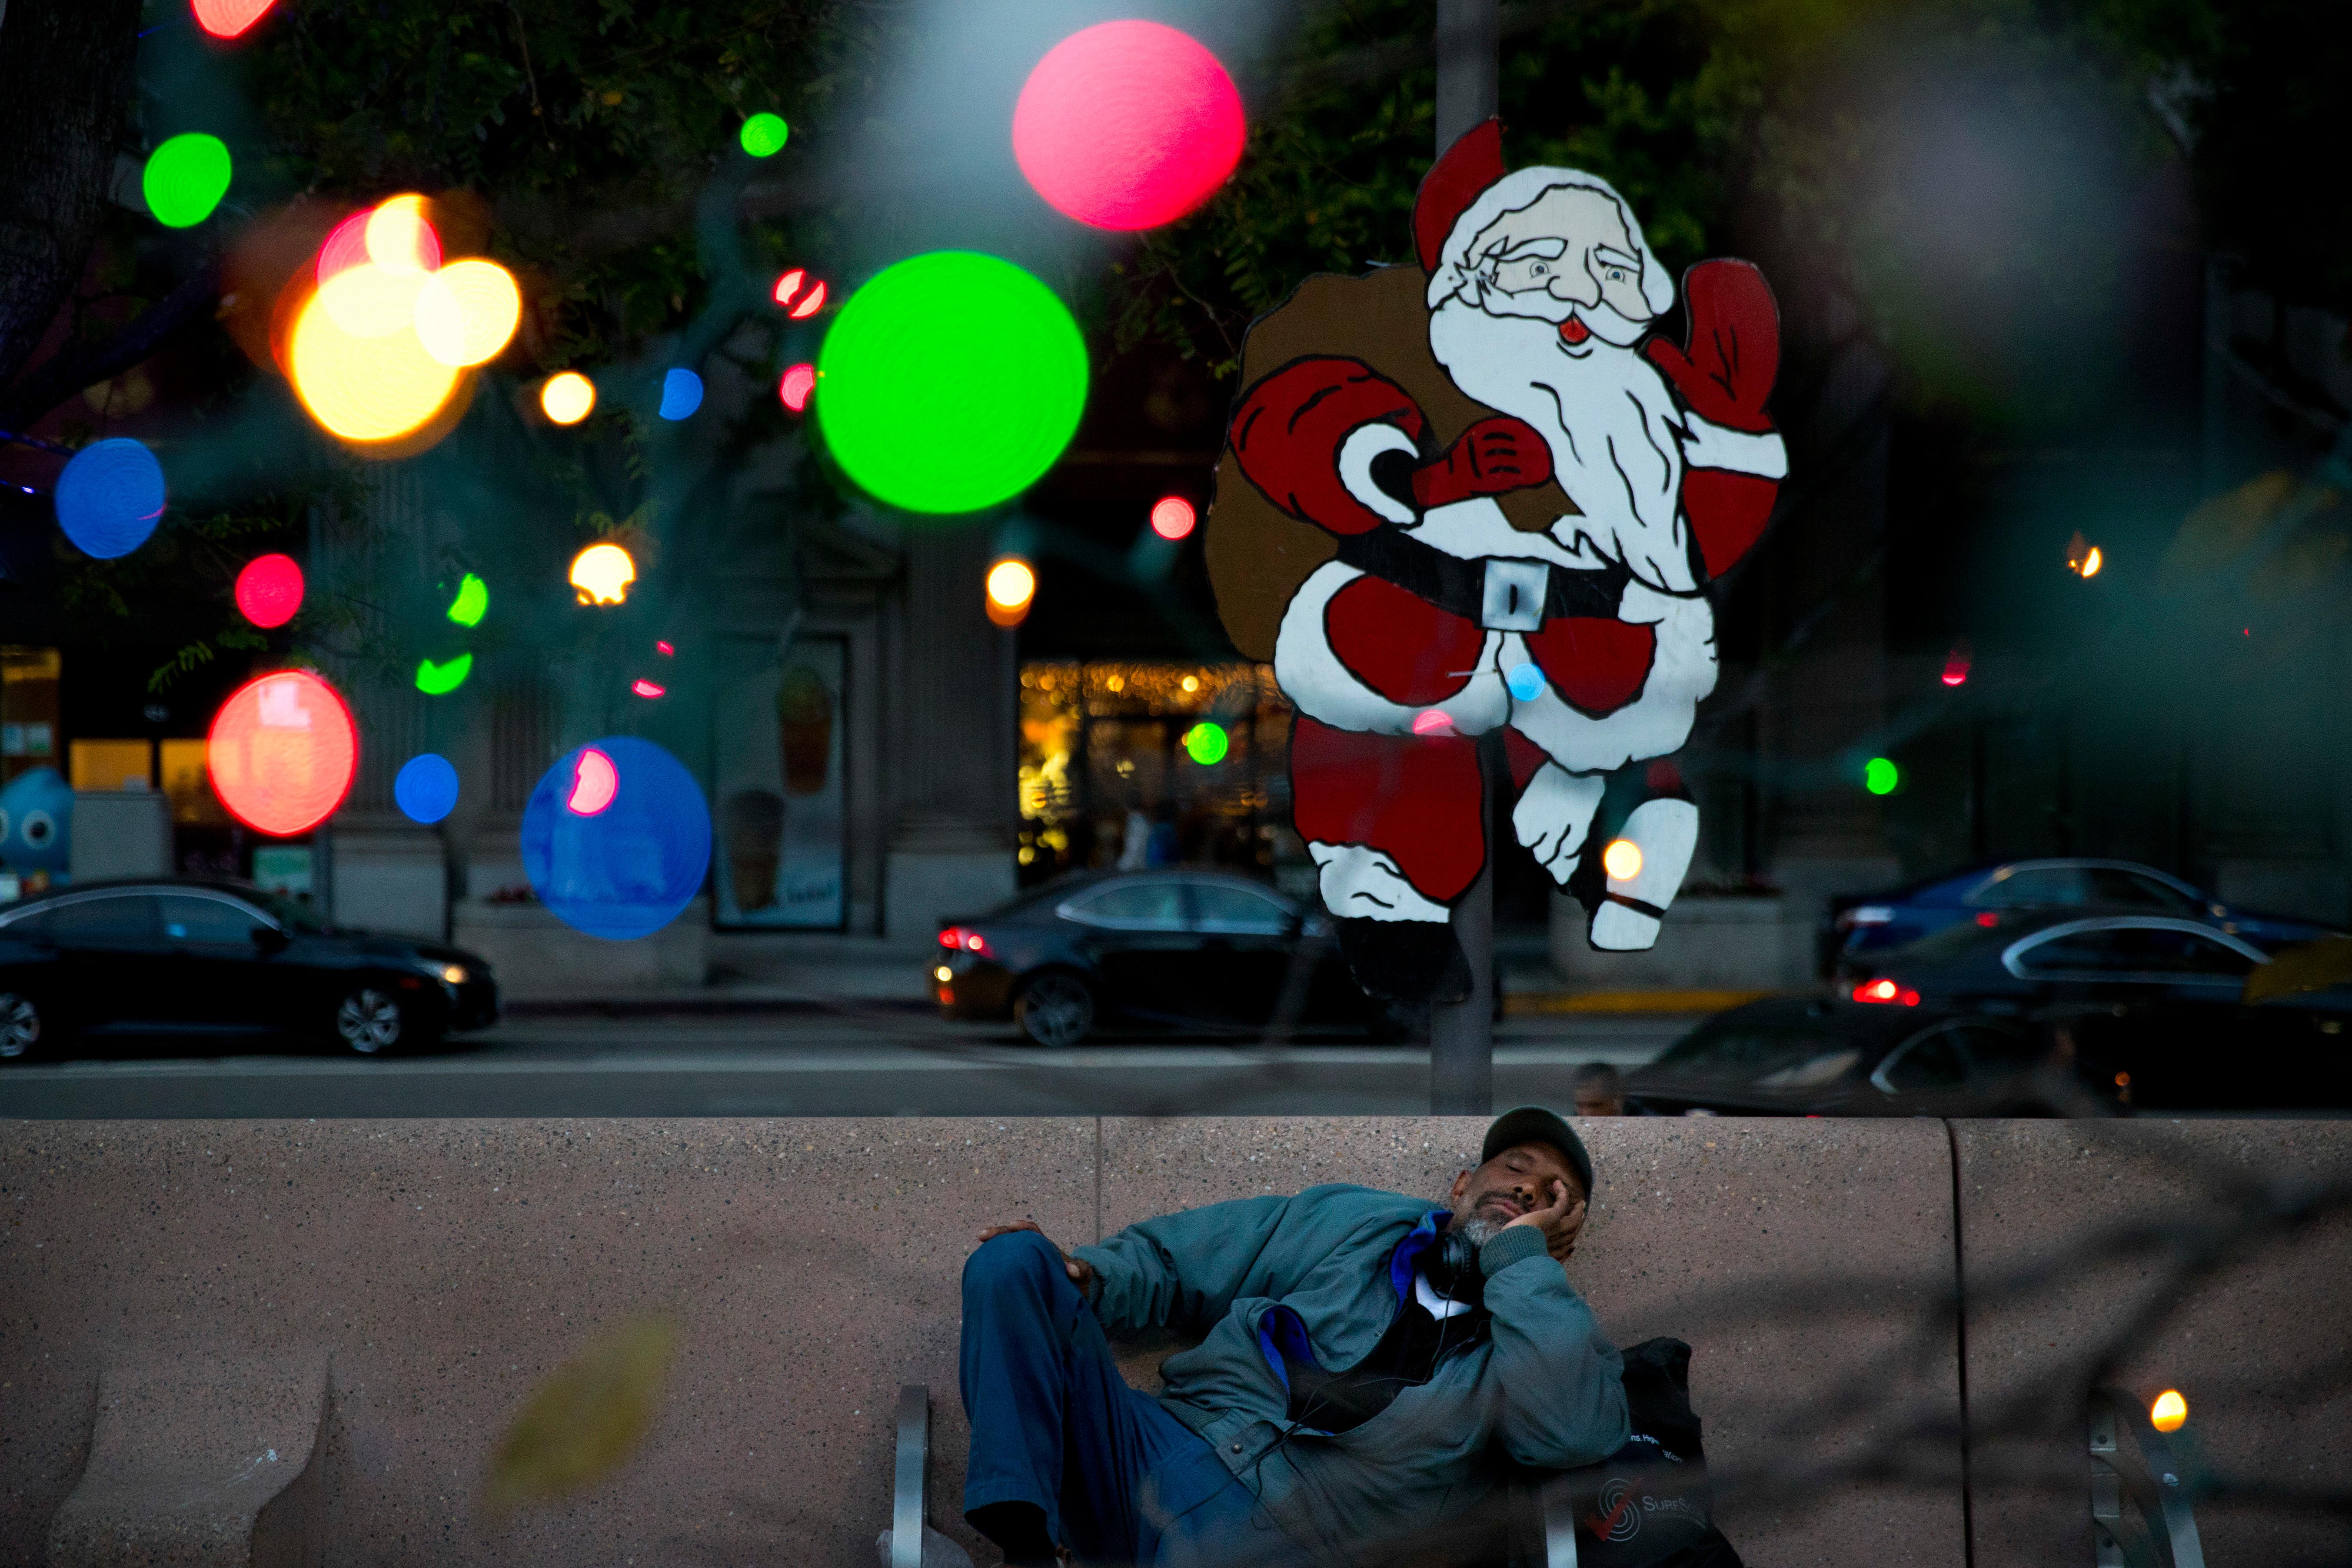 Homeless man Alonzo Harrison, 47, takes a nap on a bench at Pershing Square decorated with Christmas lights in the background on Monday, Dec. 4, 2017, in Los Angeles. A homeless crisis of unprecedented proportions is rocking the West Coast, and its victims are being left behind by the very things that mark the region's success: soaring housing costs, rock-bottom vacancy rates and a roaring economy that waits for no one. (AP Photo/Jae C. Hong)